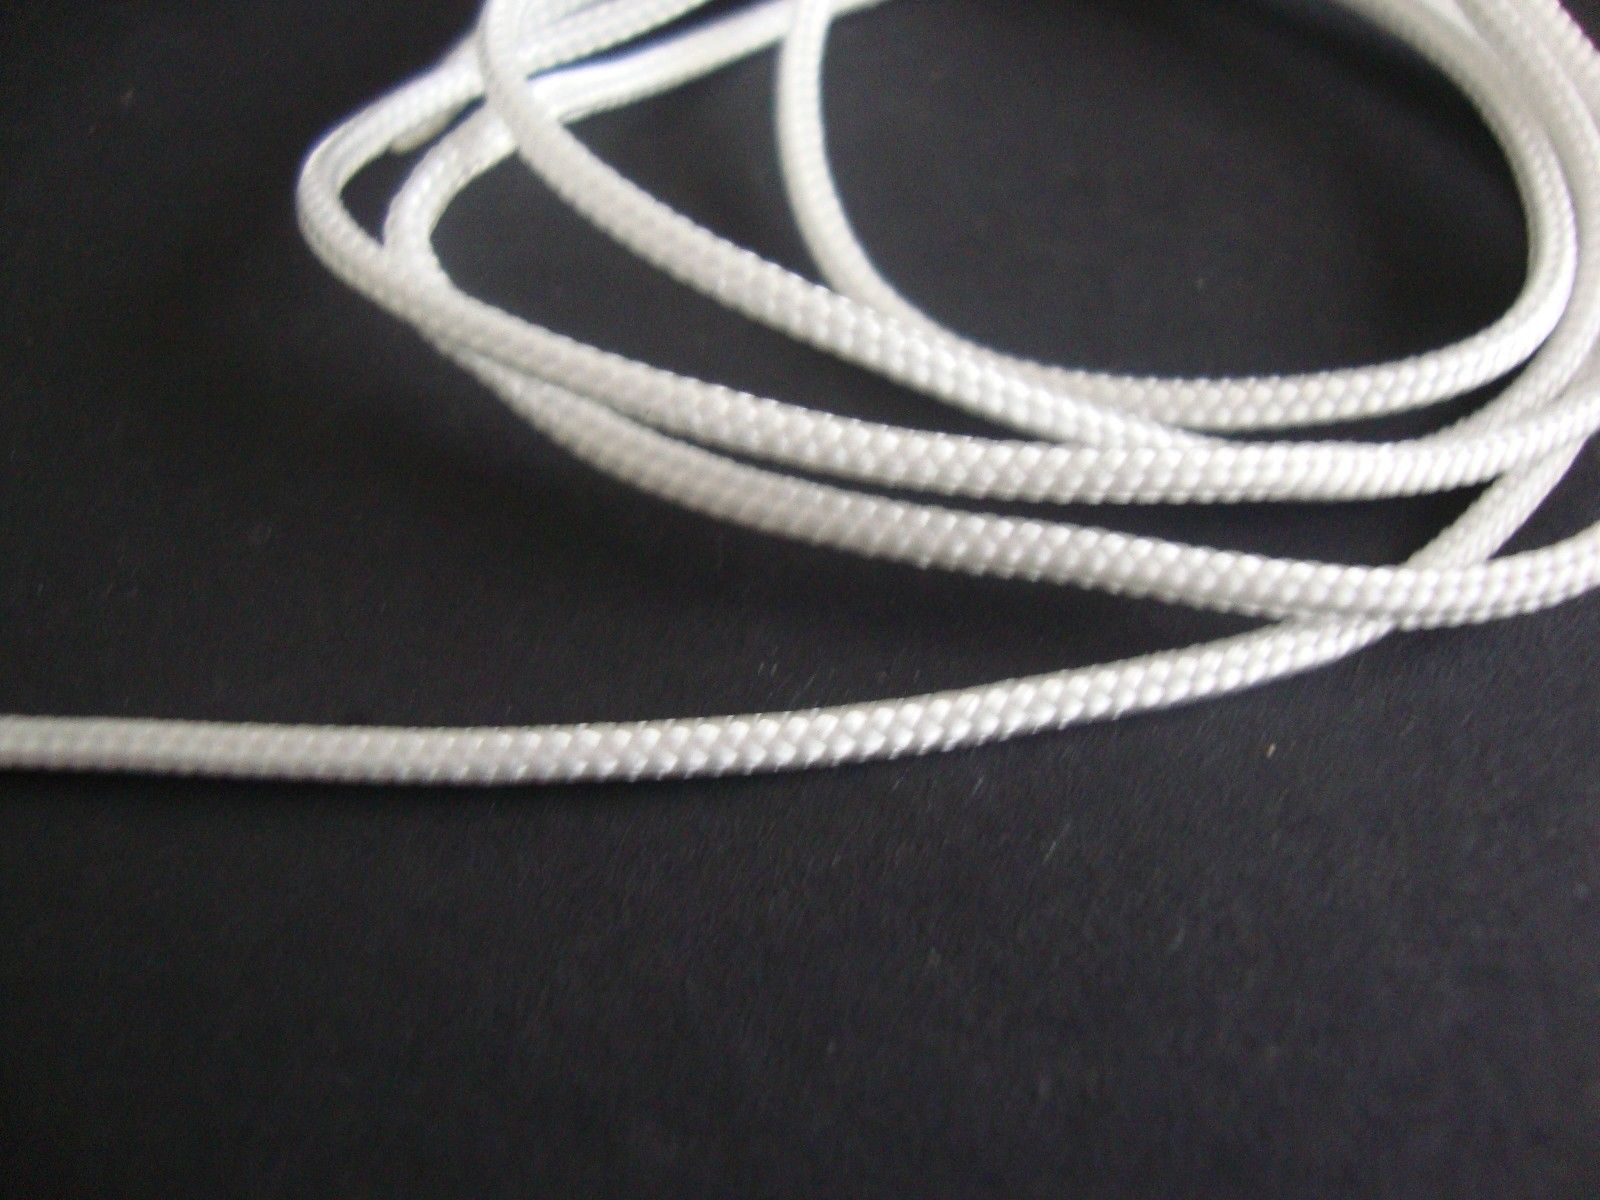 100 YARDS :1.8mm WHITE LIFT CORD for Blinds, Roman Shades and More